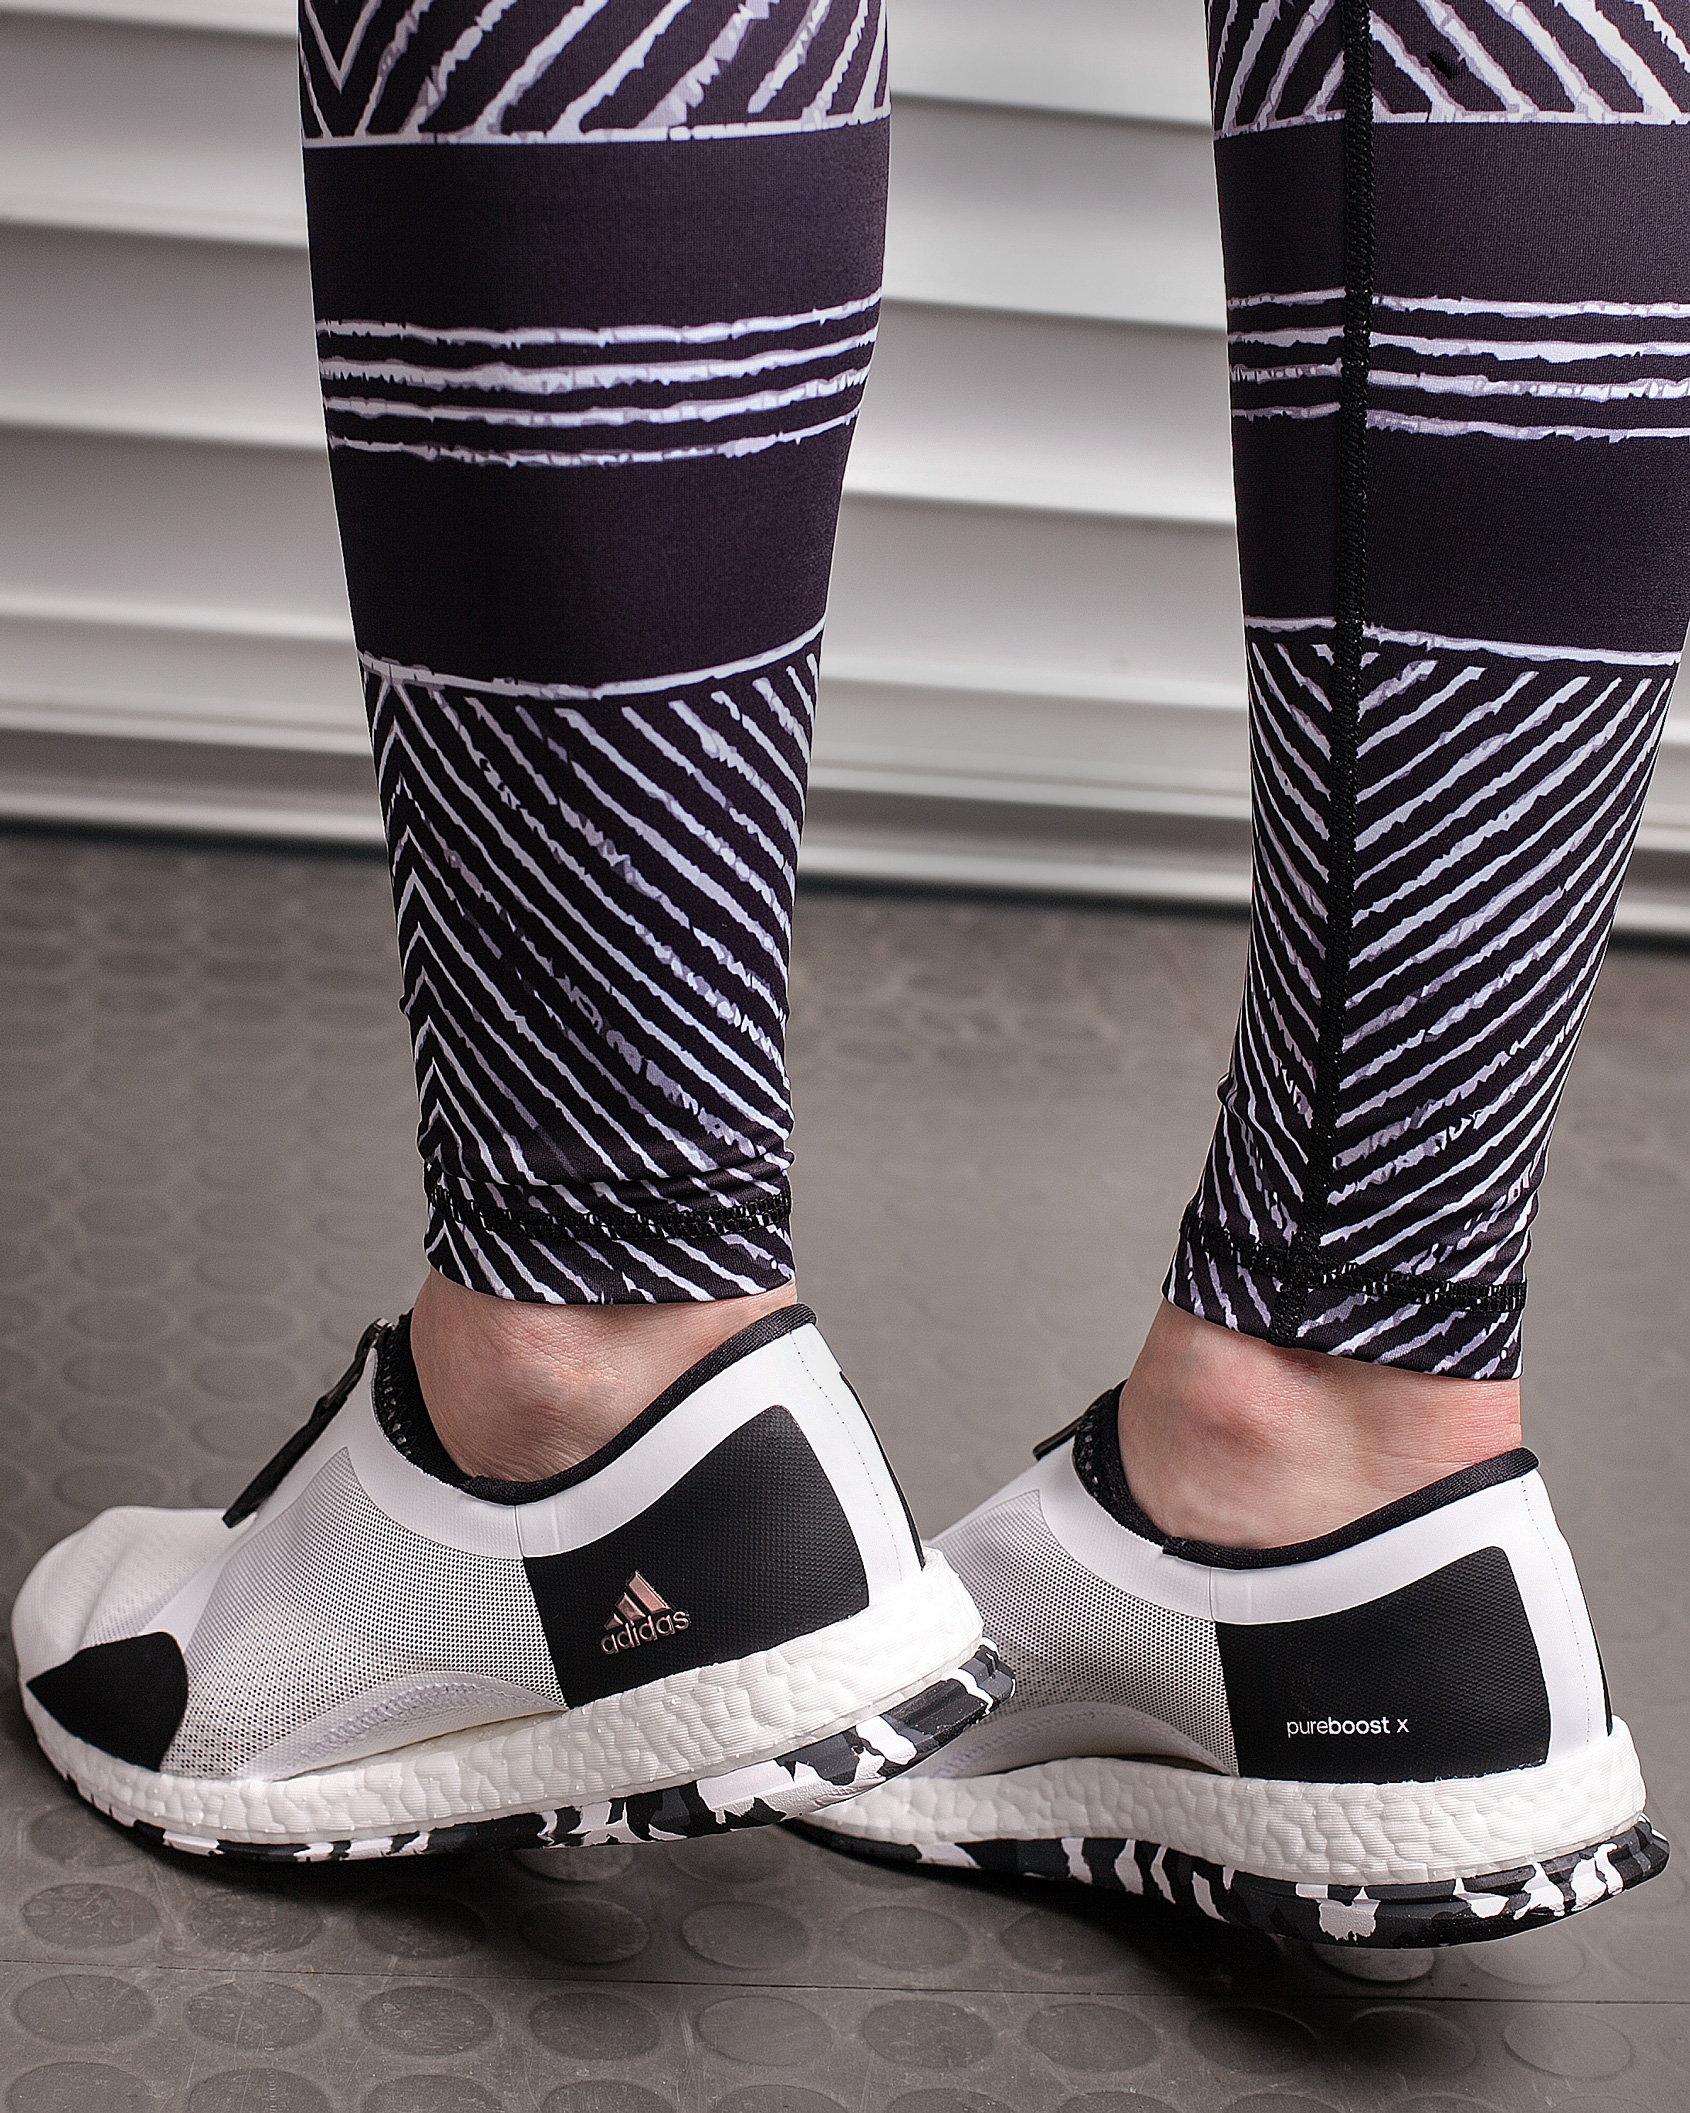 adidas Womens PureBOOST X TR Zip Tights.no